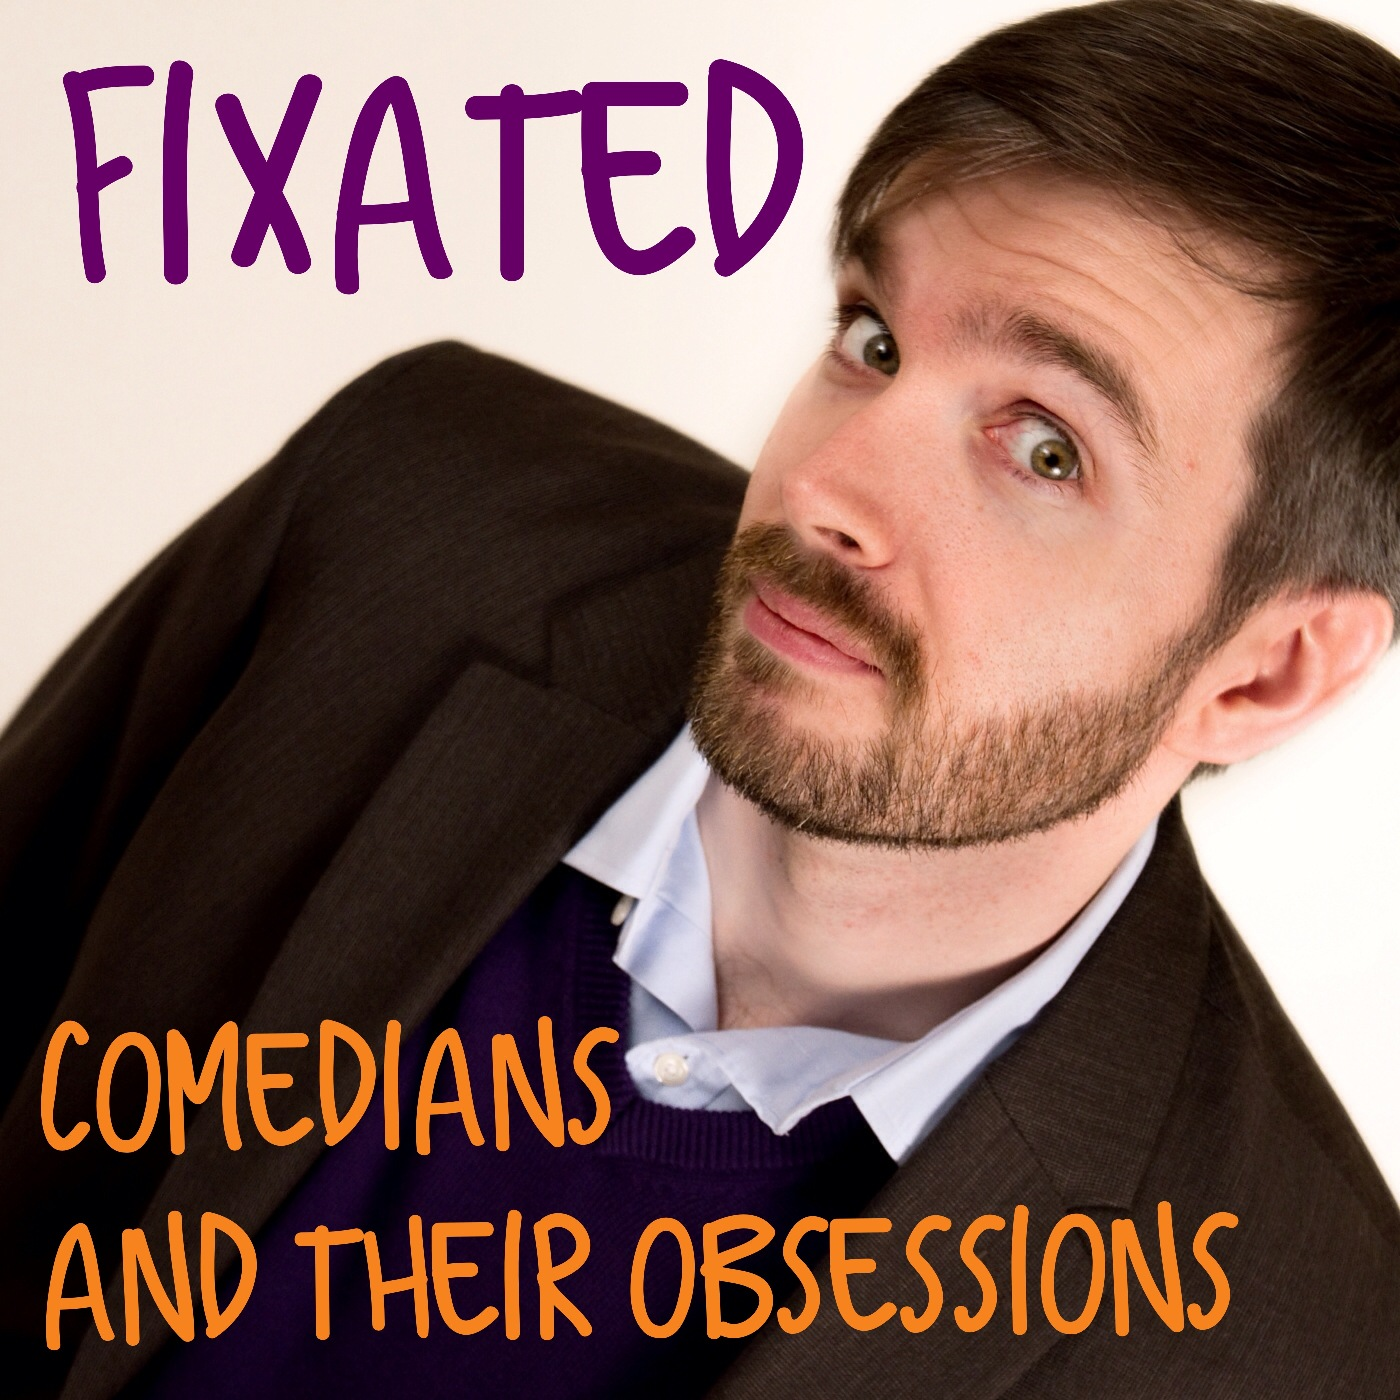 Fixated | Comedians and their obsessions logo